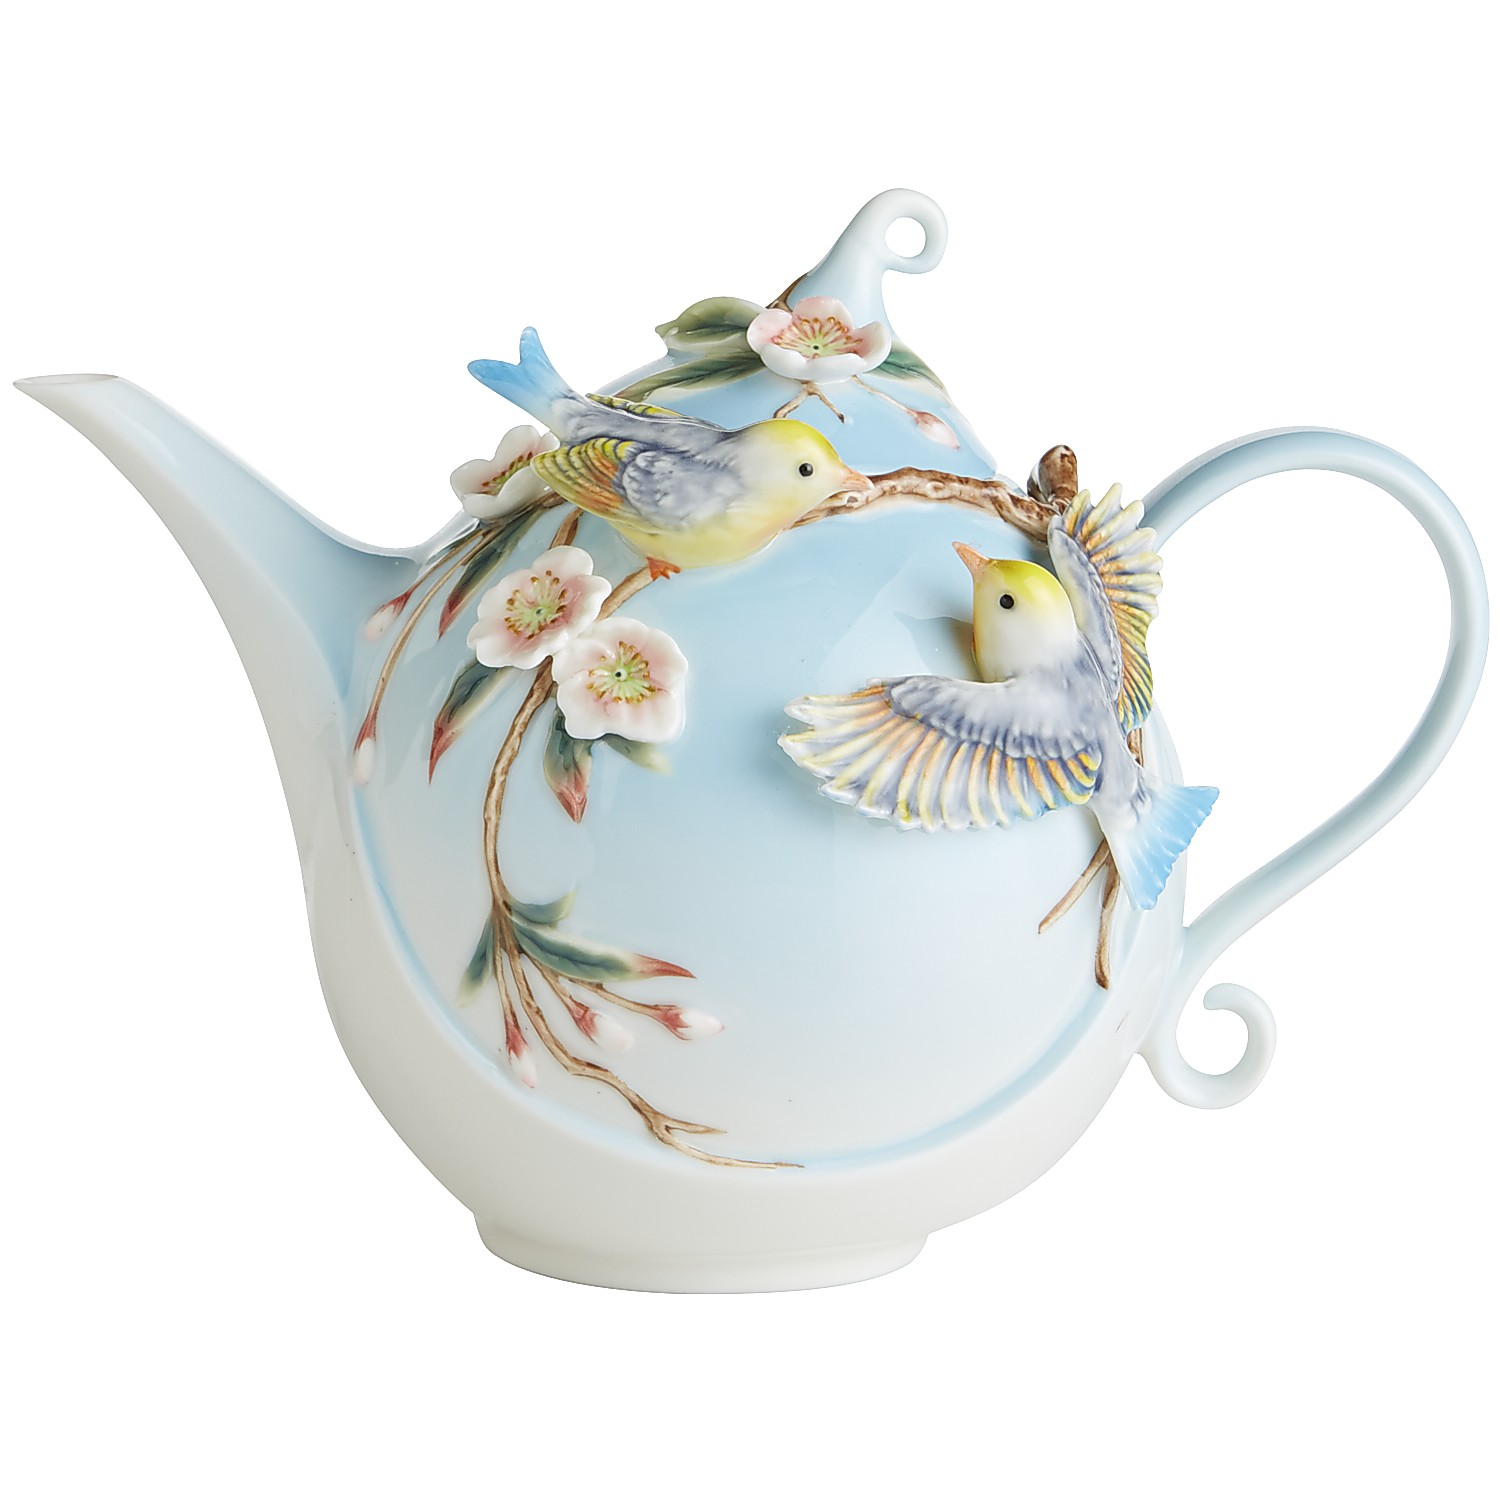 Porcelain Hand-Painted Bird Sanctuary Teapot